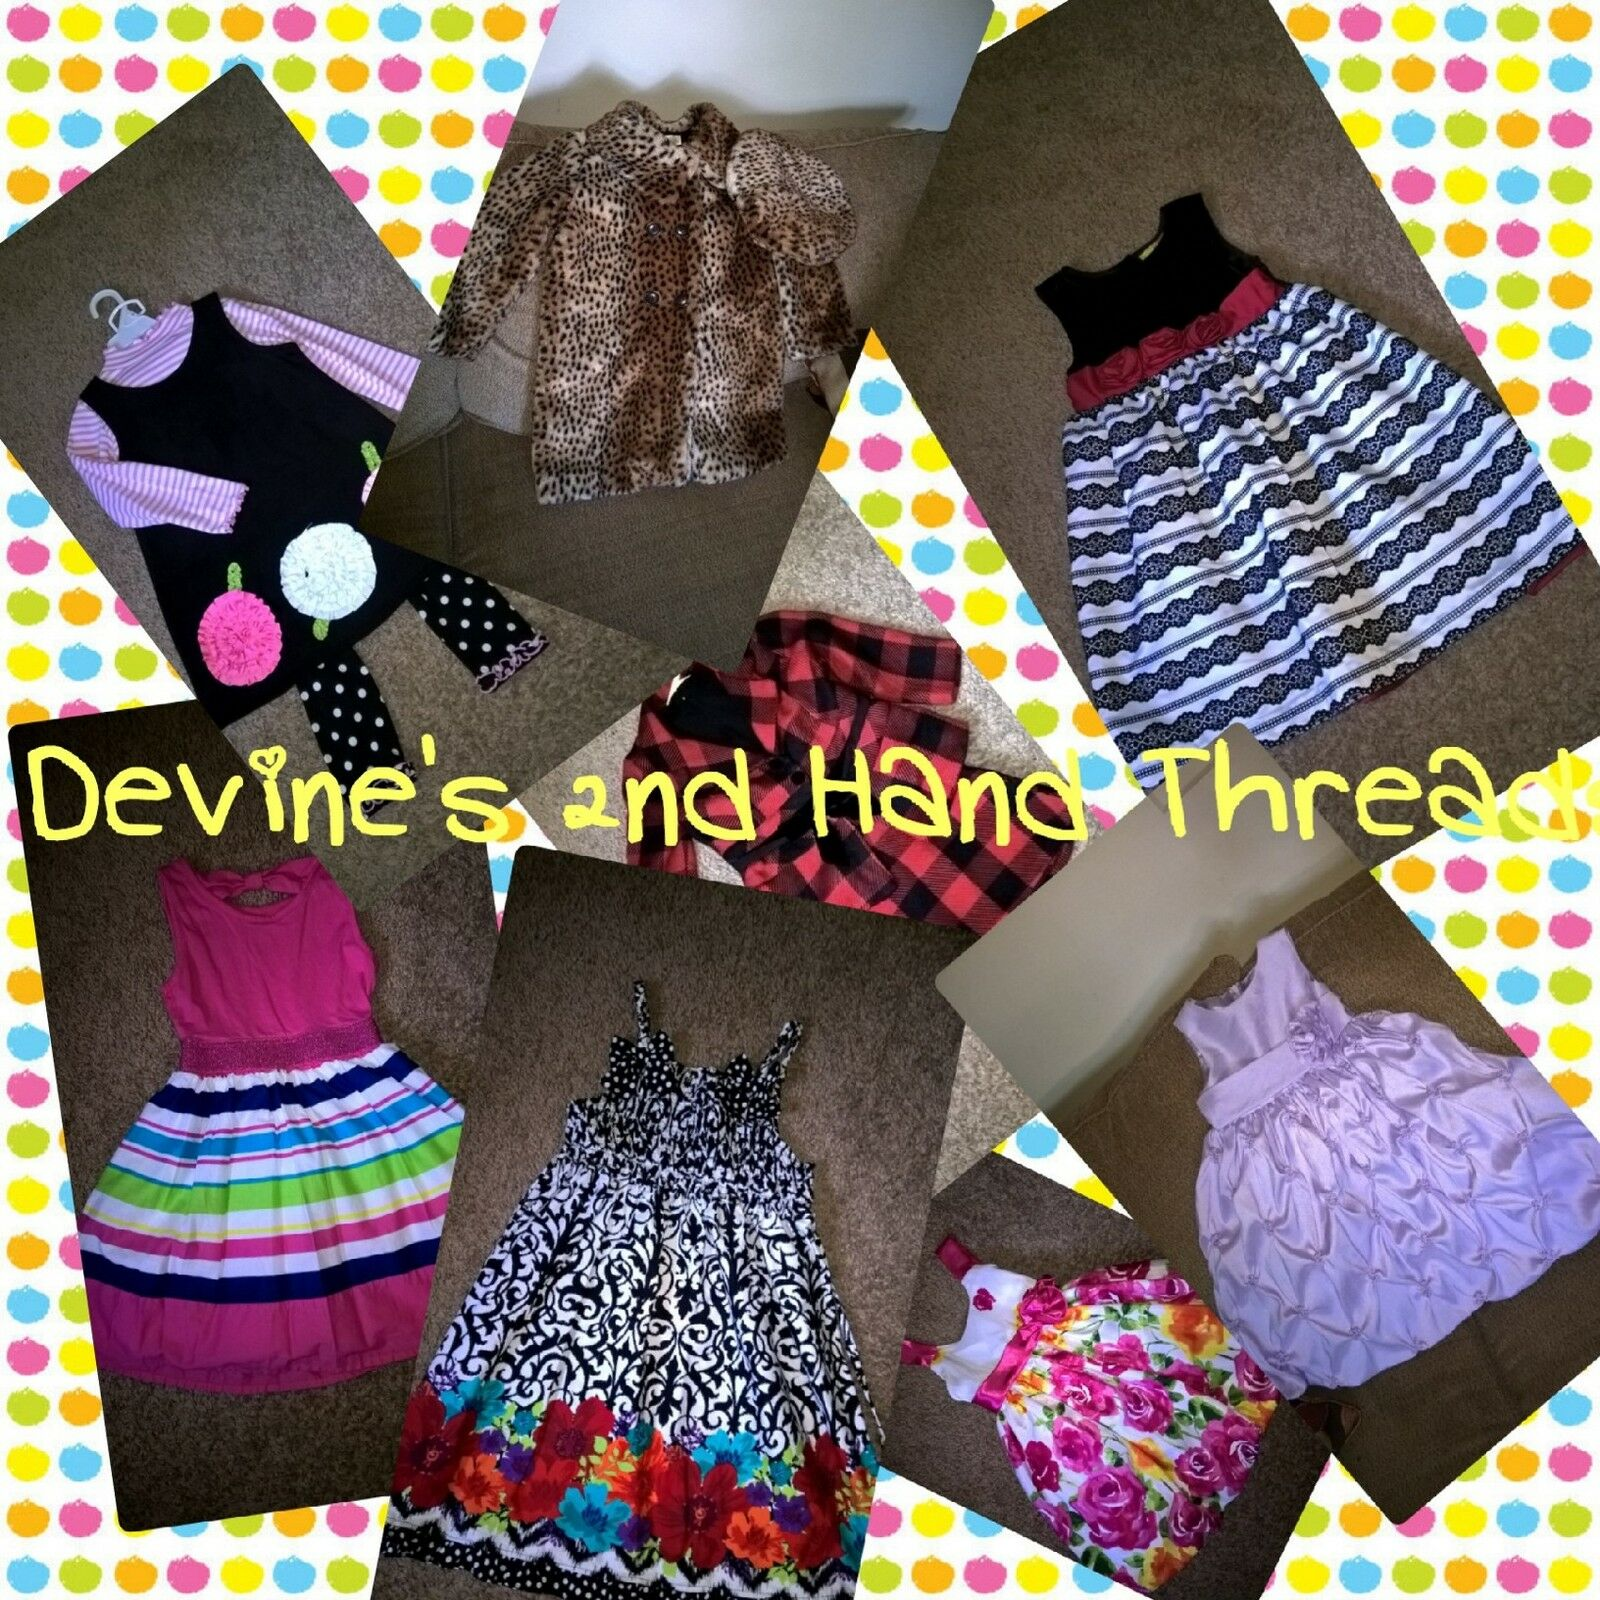 Devine's 2nd Hand Threads